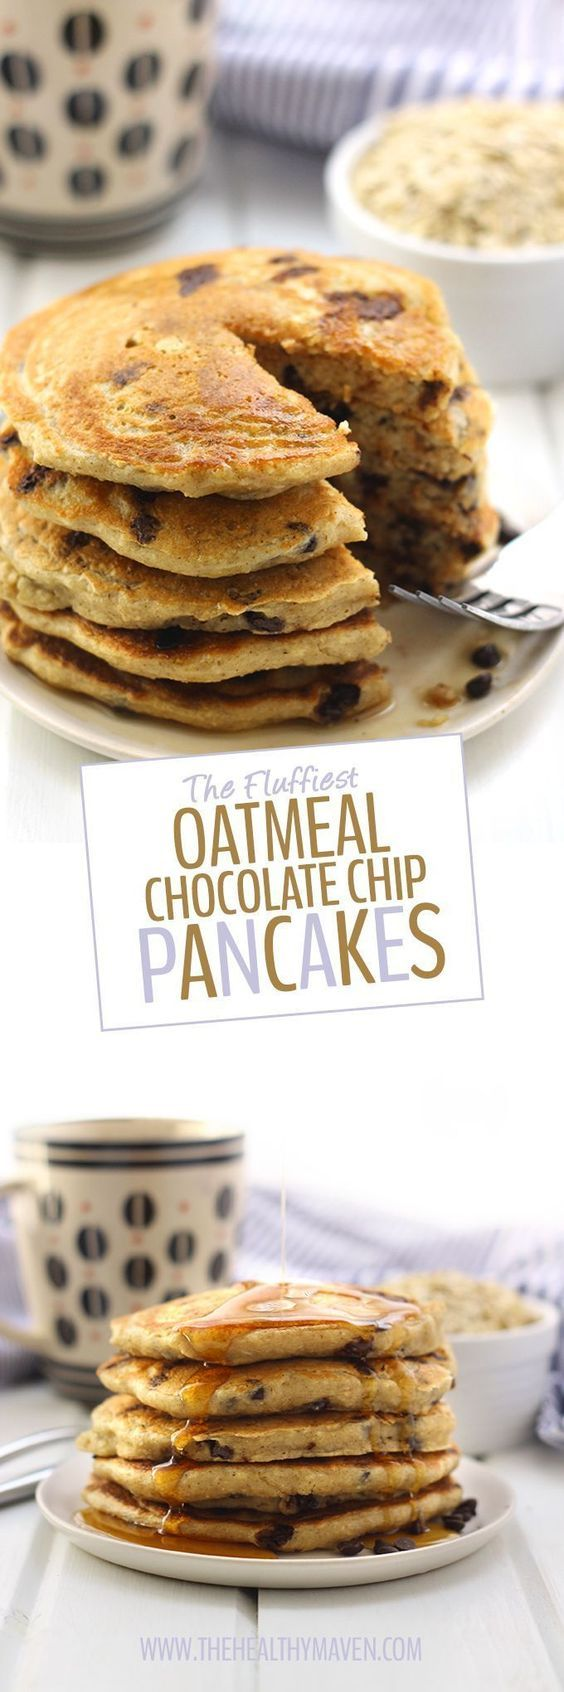 Oatmeal meets pancakes with The Fluffiest Oatmeal Chocolate Chip Pancakes. These pancakes are gluten-free refined sugar-free and high in protein but are the most delicious fluffiest pancakes you will ever eat. They will quickly become a weekend brunch r